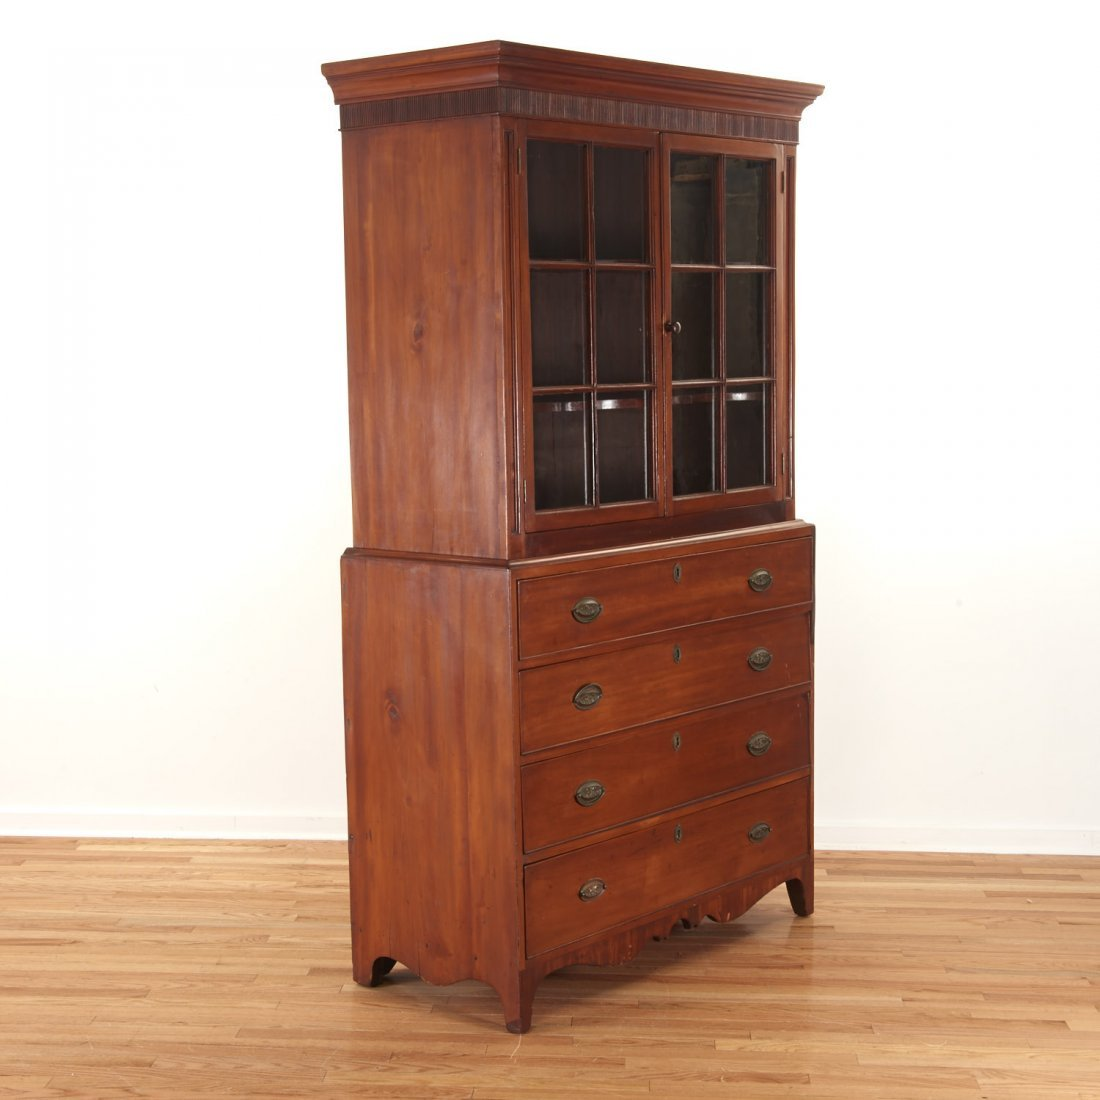 American Federal cherrywood bookcase cabinet - 2